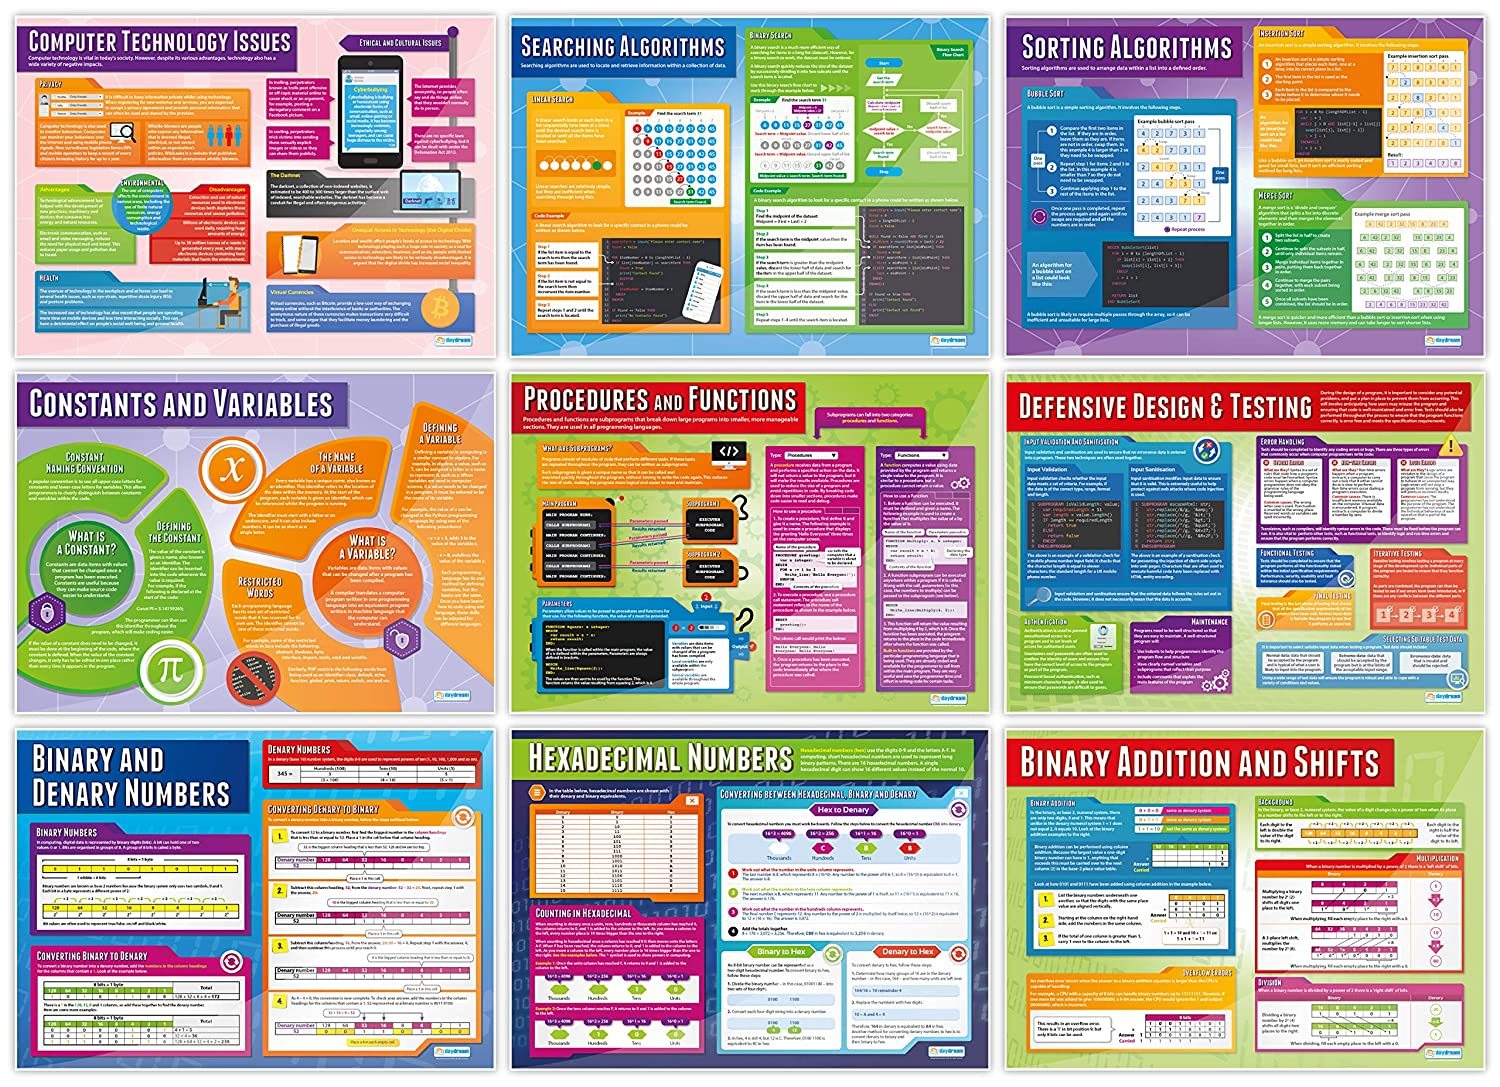 Computer Science Posters Gloss Paper measuring 850mm x 594mm | STEM Posters for the Classroom Education Charts by Daydream Education Binary Addition and Shifts A1